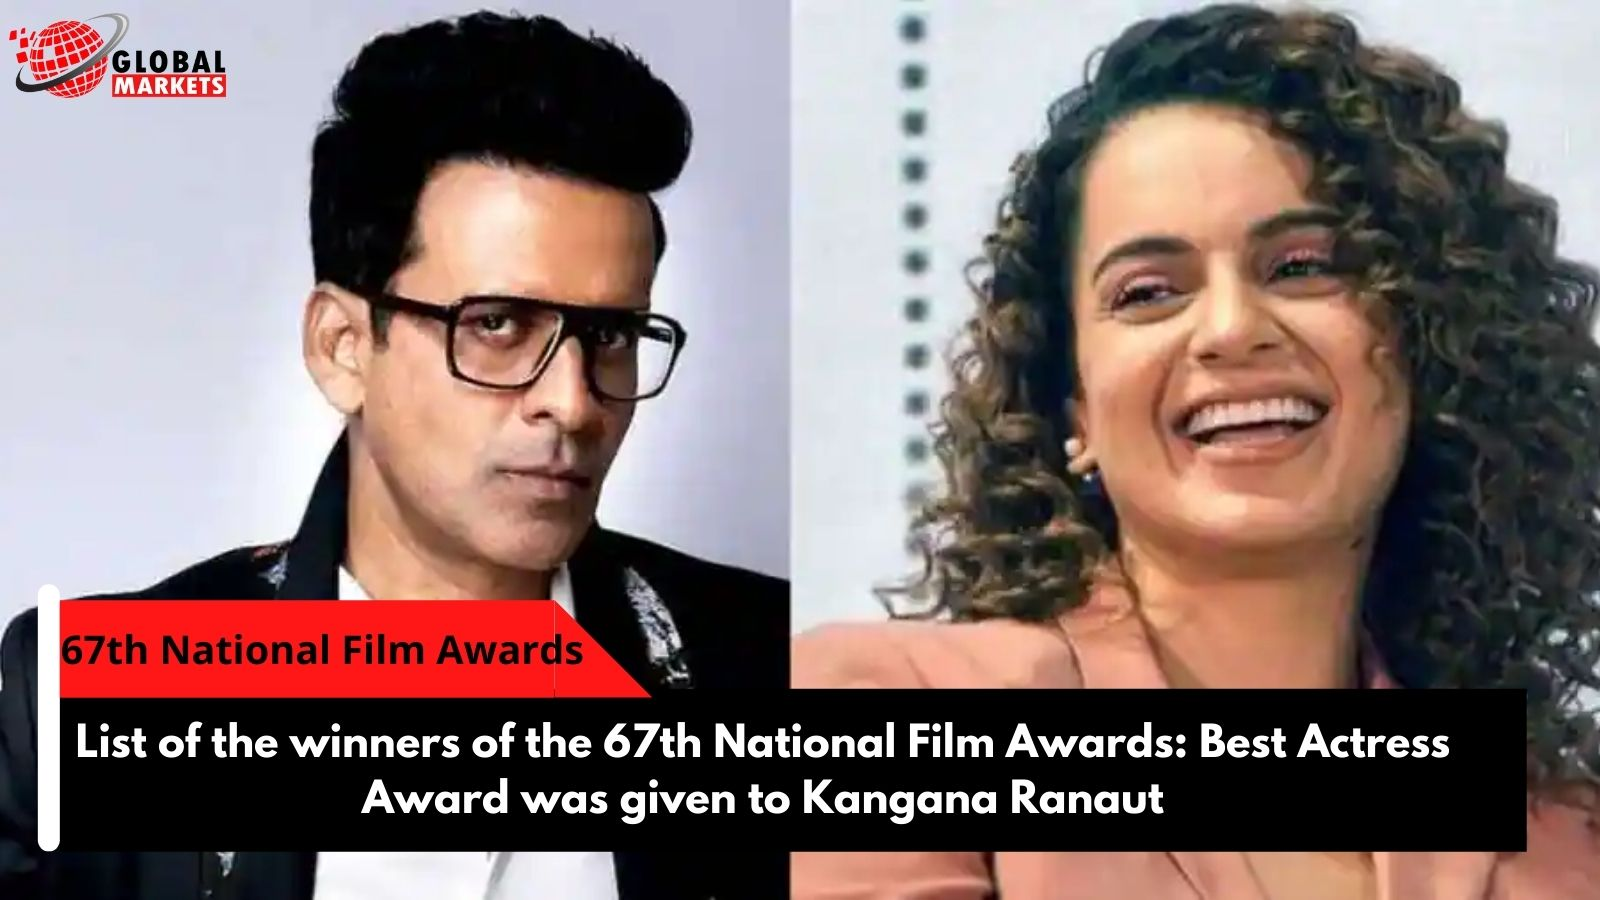 Complete list of the winners of the 67th National Film Awards: Best Actress Award was given to Kangana Ranaut